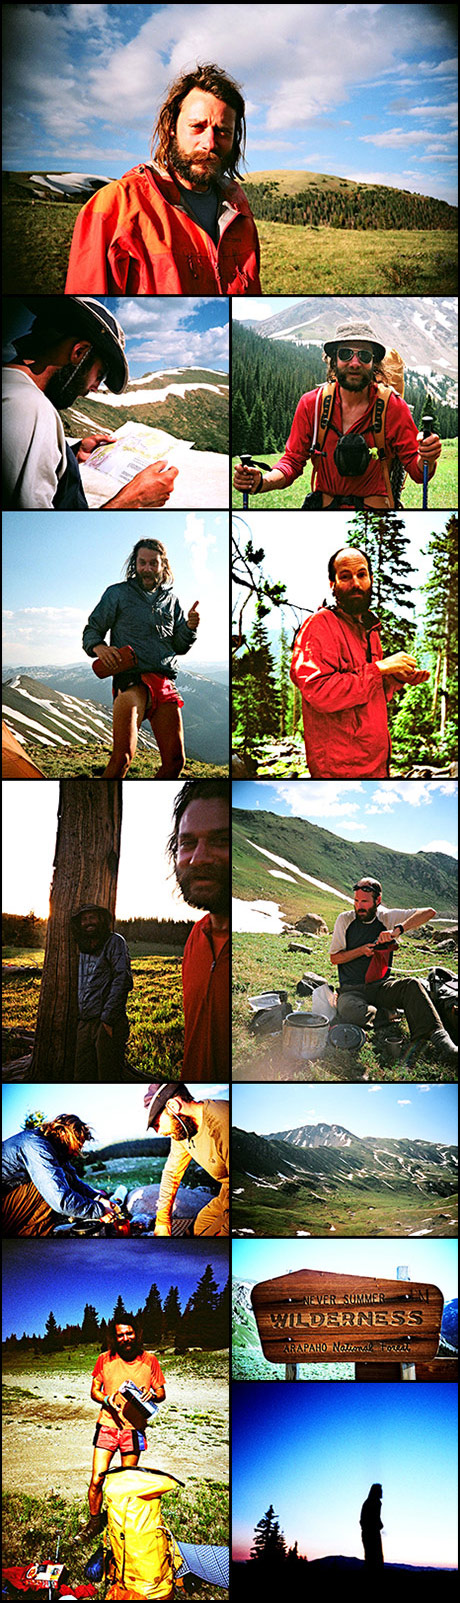 Cookie and Paul In Colorado Montage